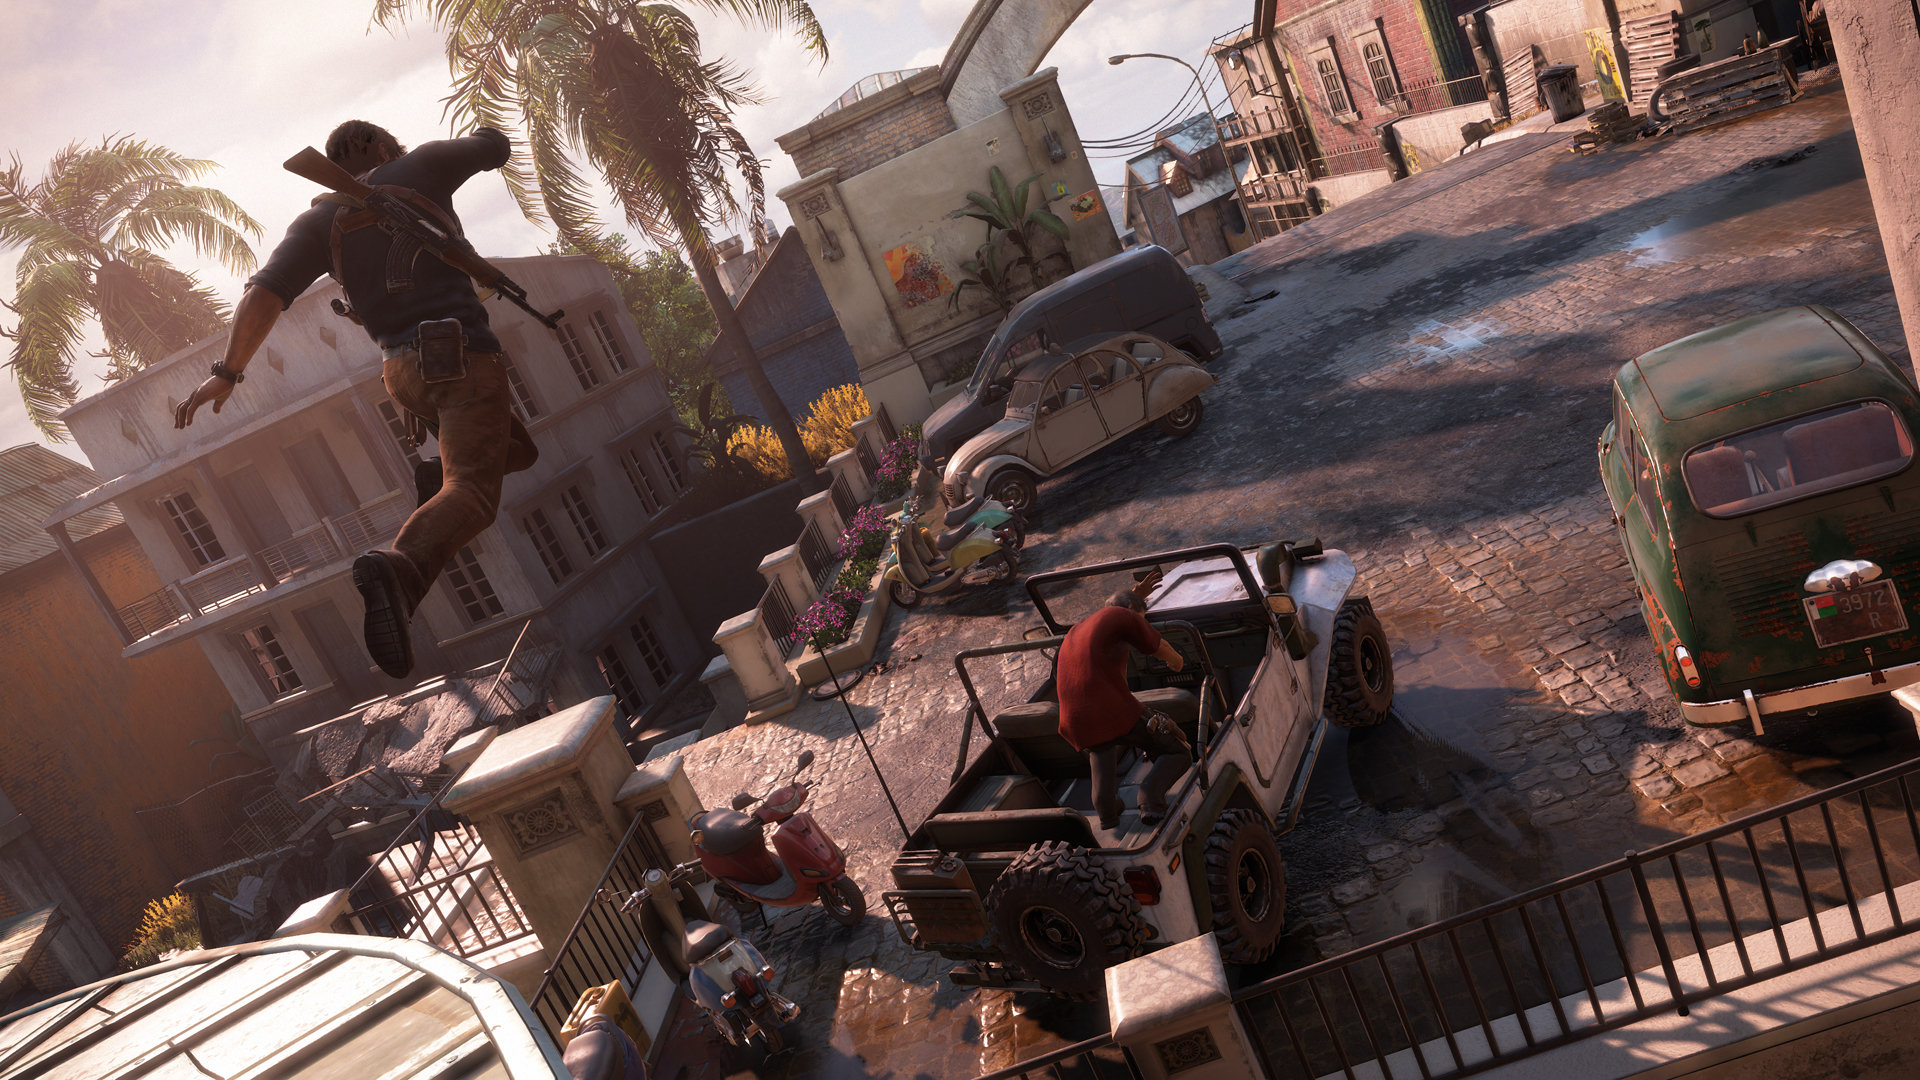 uncharted 4 screenshot 20 15jun15